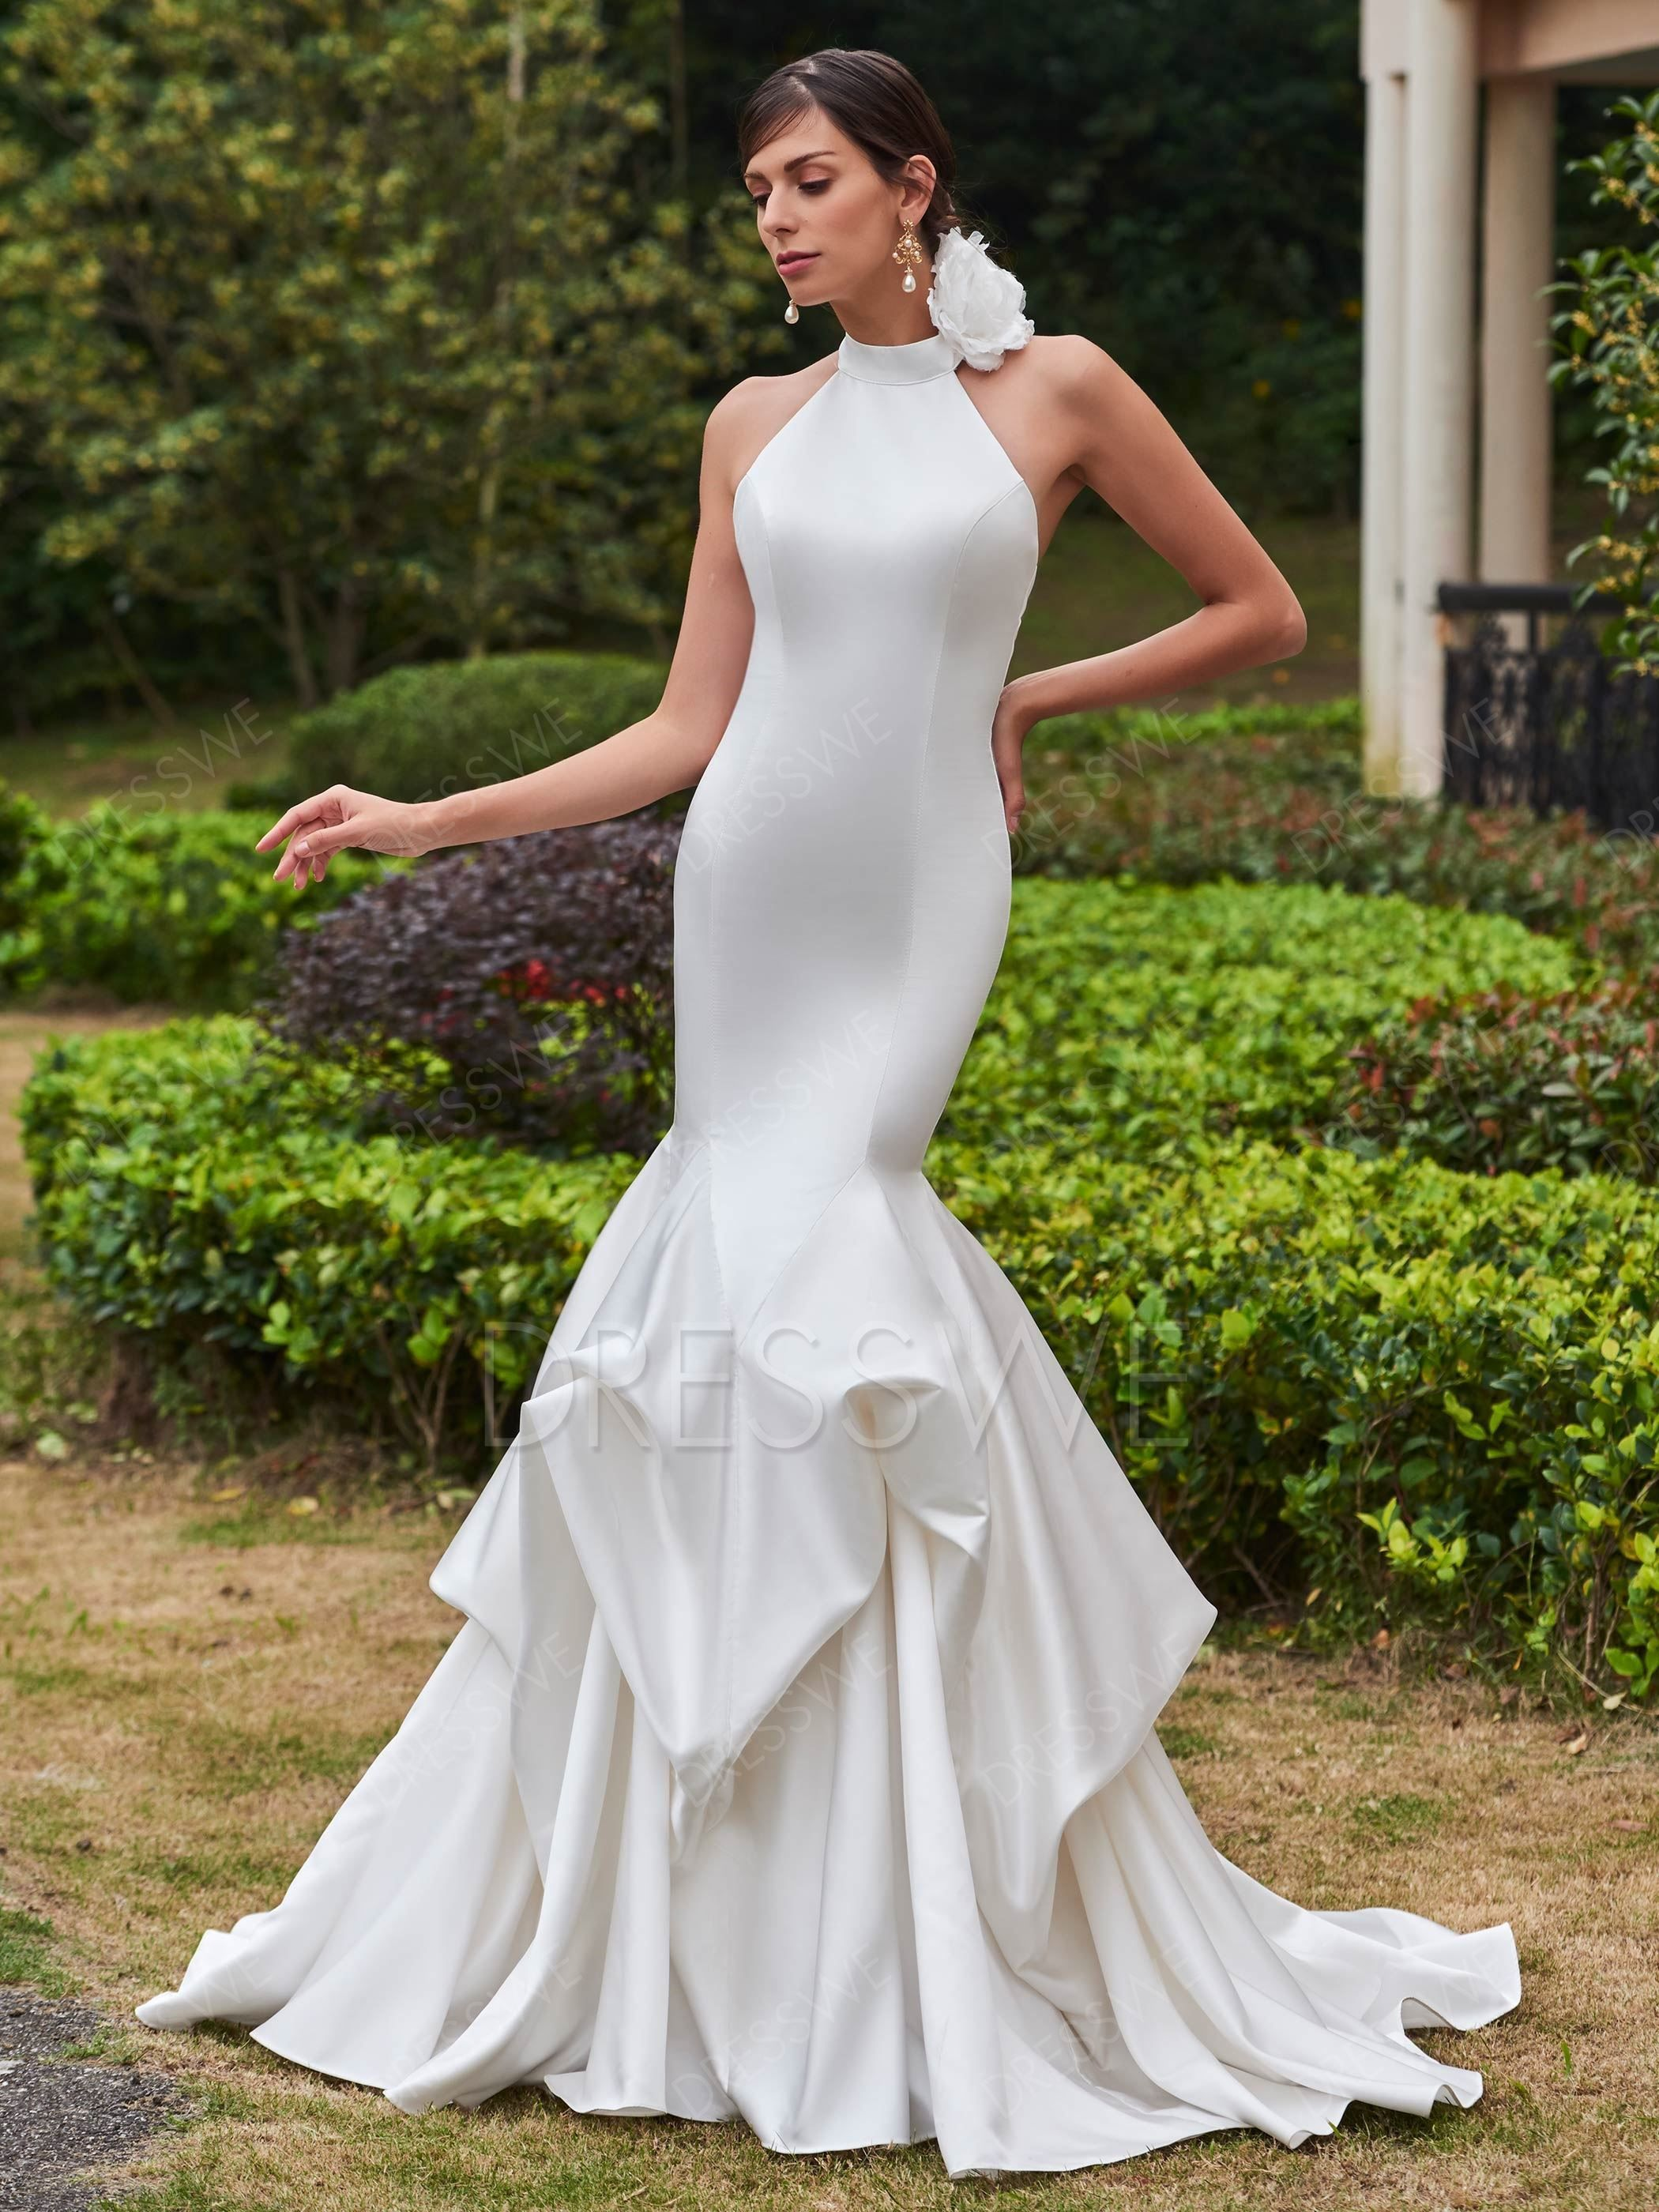 Vintage wedding dresses with sleeves  Buy Vintage High Neck ZipperUp Mermaid Wedding Dress Online